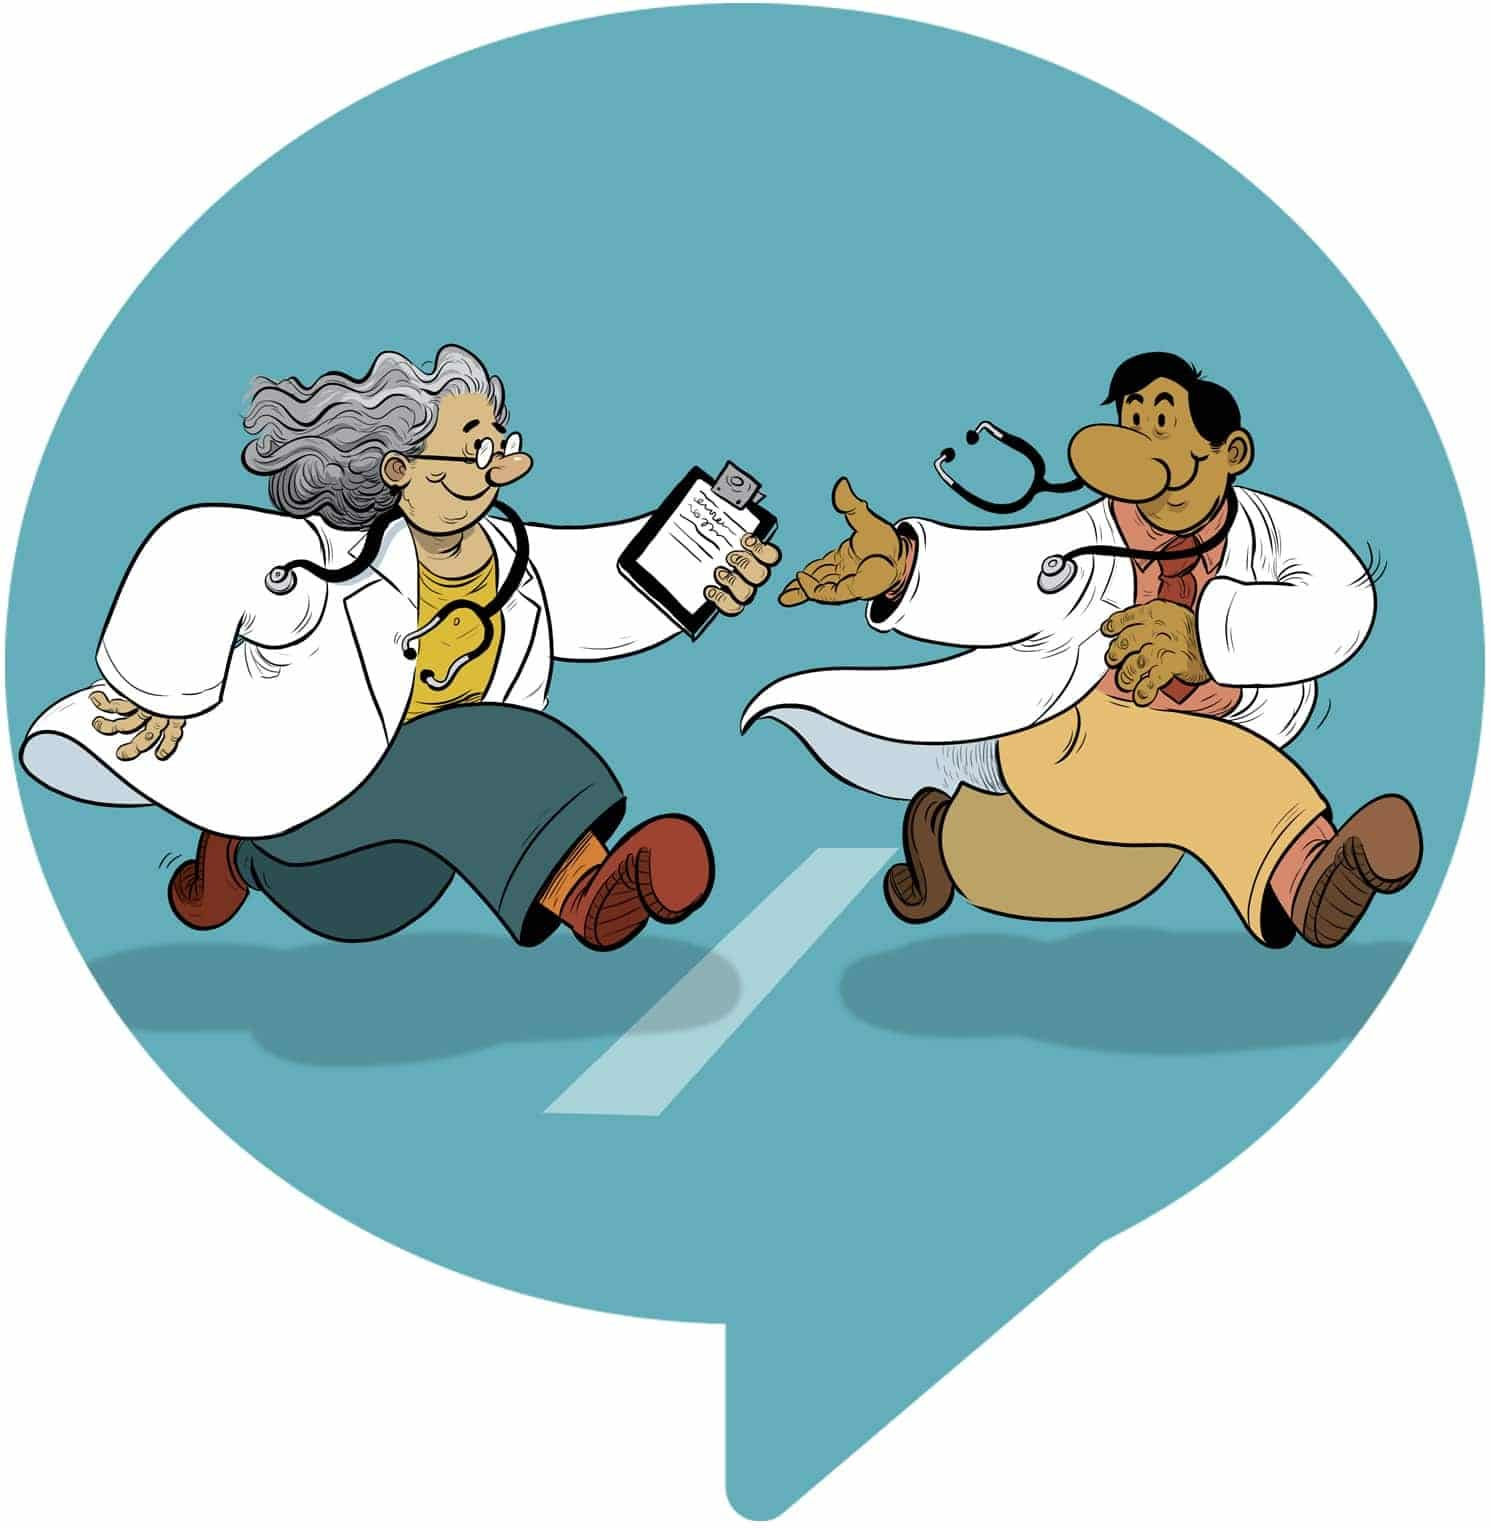 illustration of two physicians running together